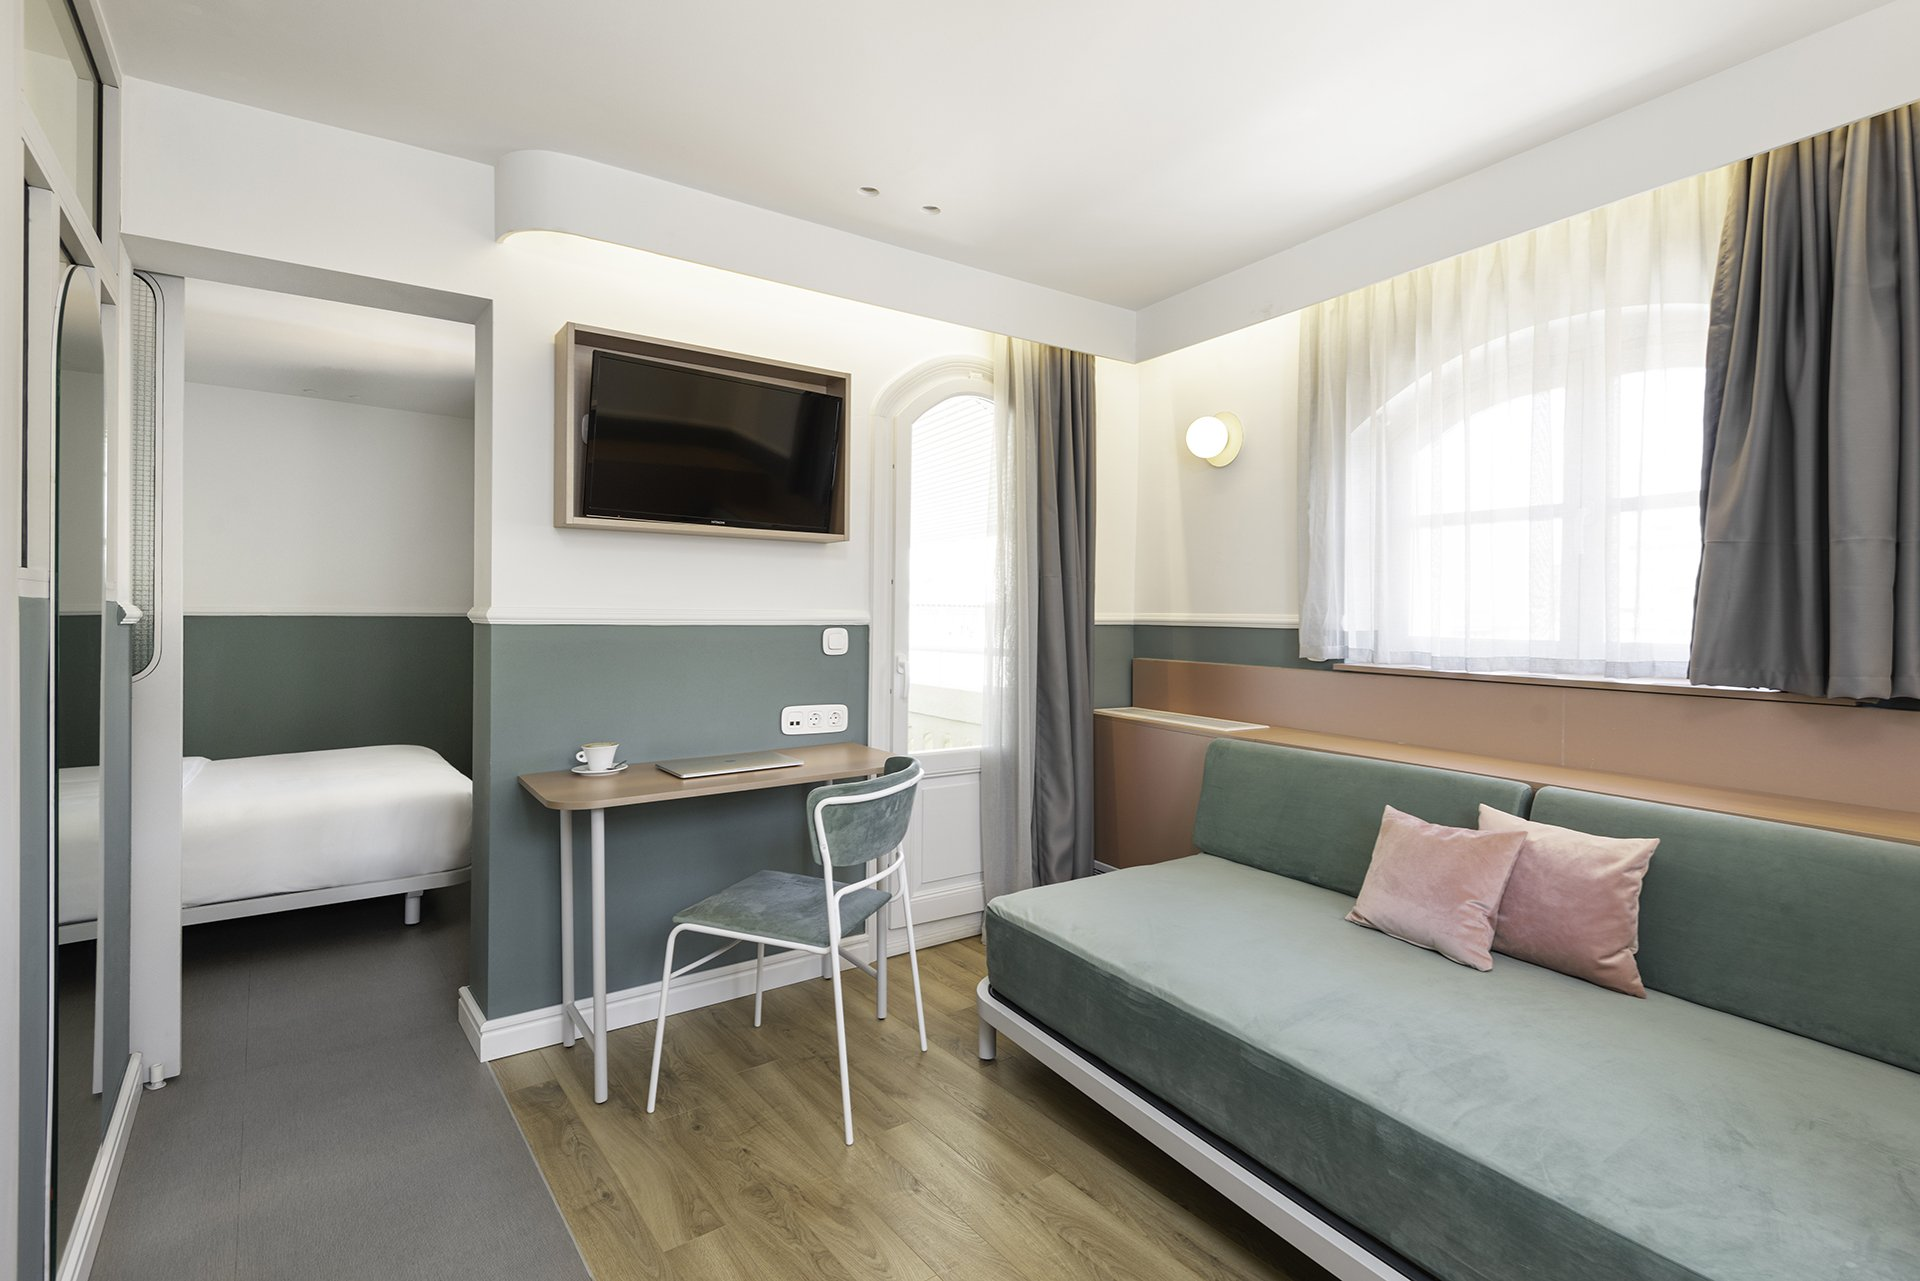 Copy of Colors Agiou Mina Thessaloniki Greece Deluxe Room with a Private Terrace and Jacuzzi 241 Boudoir